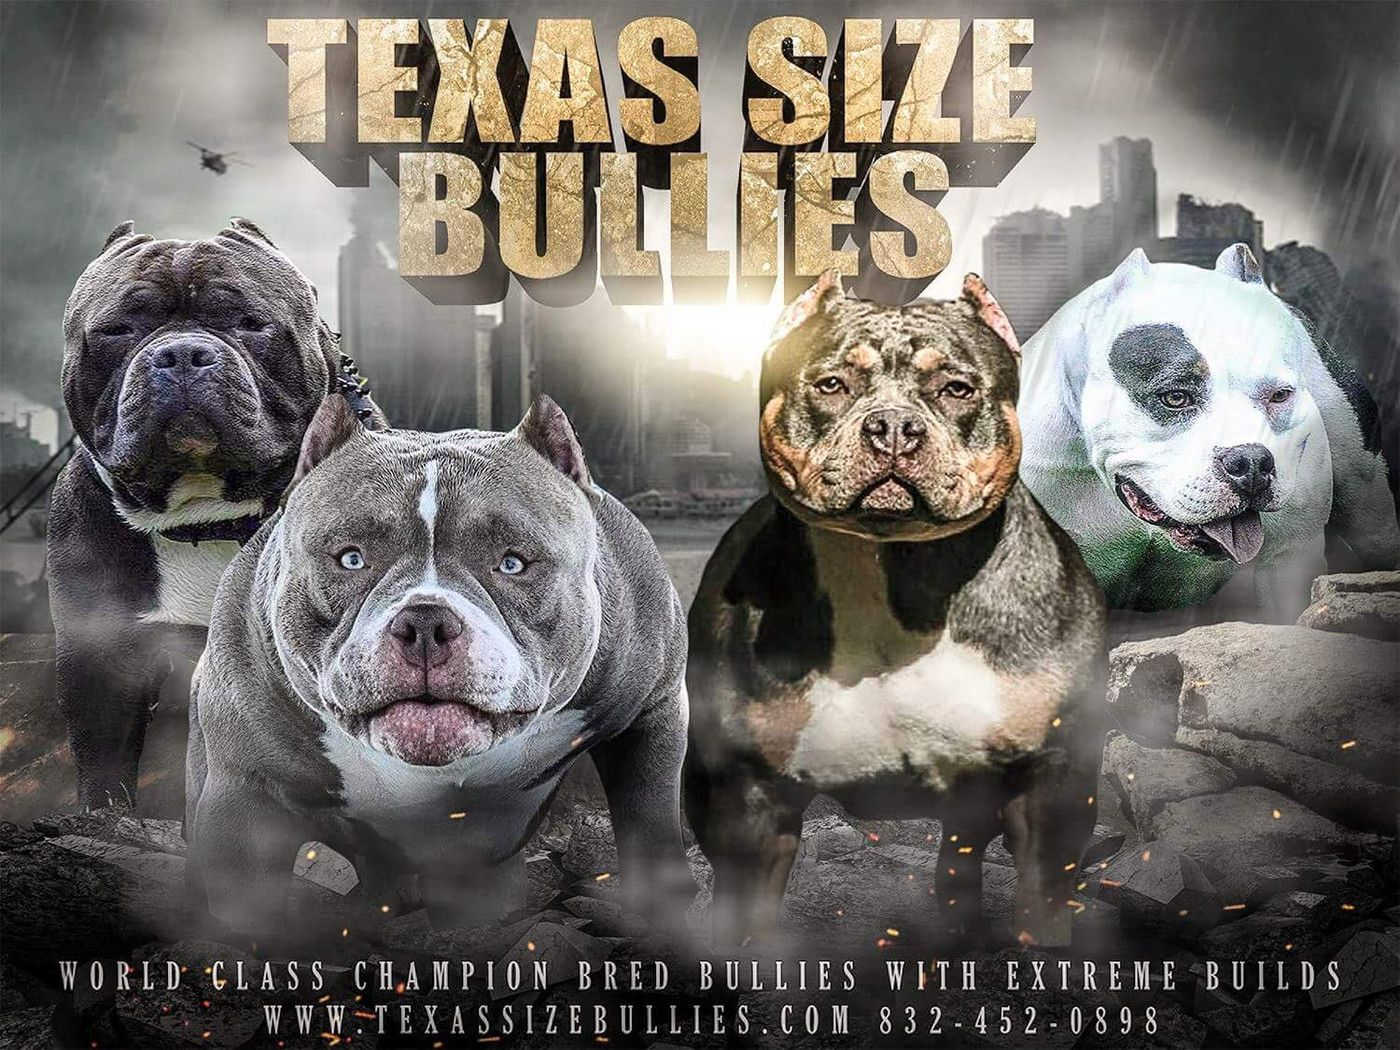 Texas Size Bullies Website Champion American Bully Breeder Extreme Build Pocket Bully S American Bully Pocket Bully Bullying